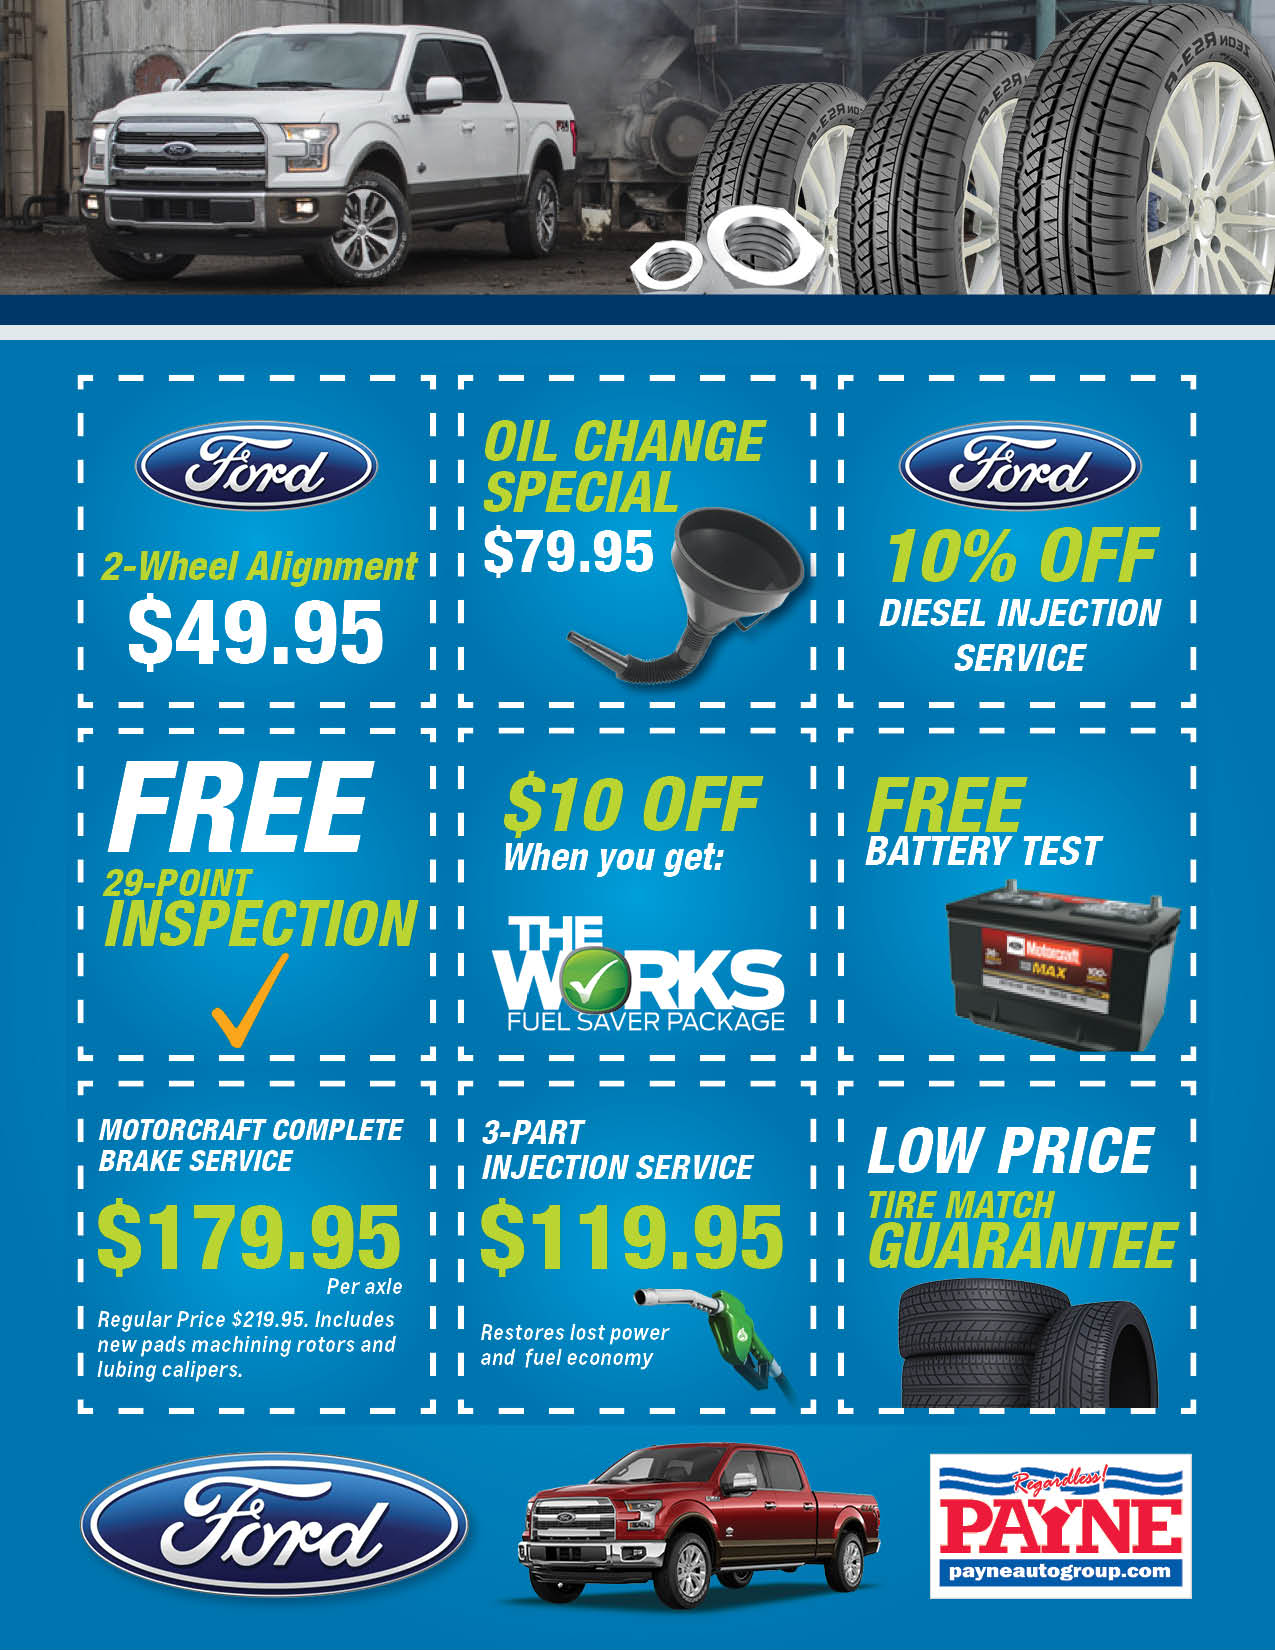 image regarding Ford Service Coupons Printable called Ford company discount codes printable : Lowes coupon codes 2018